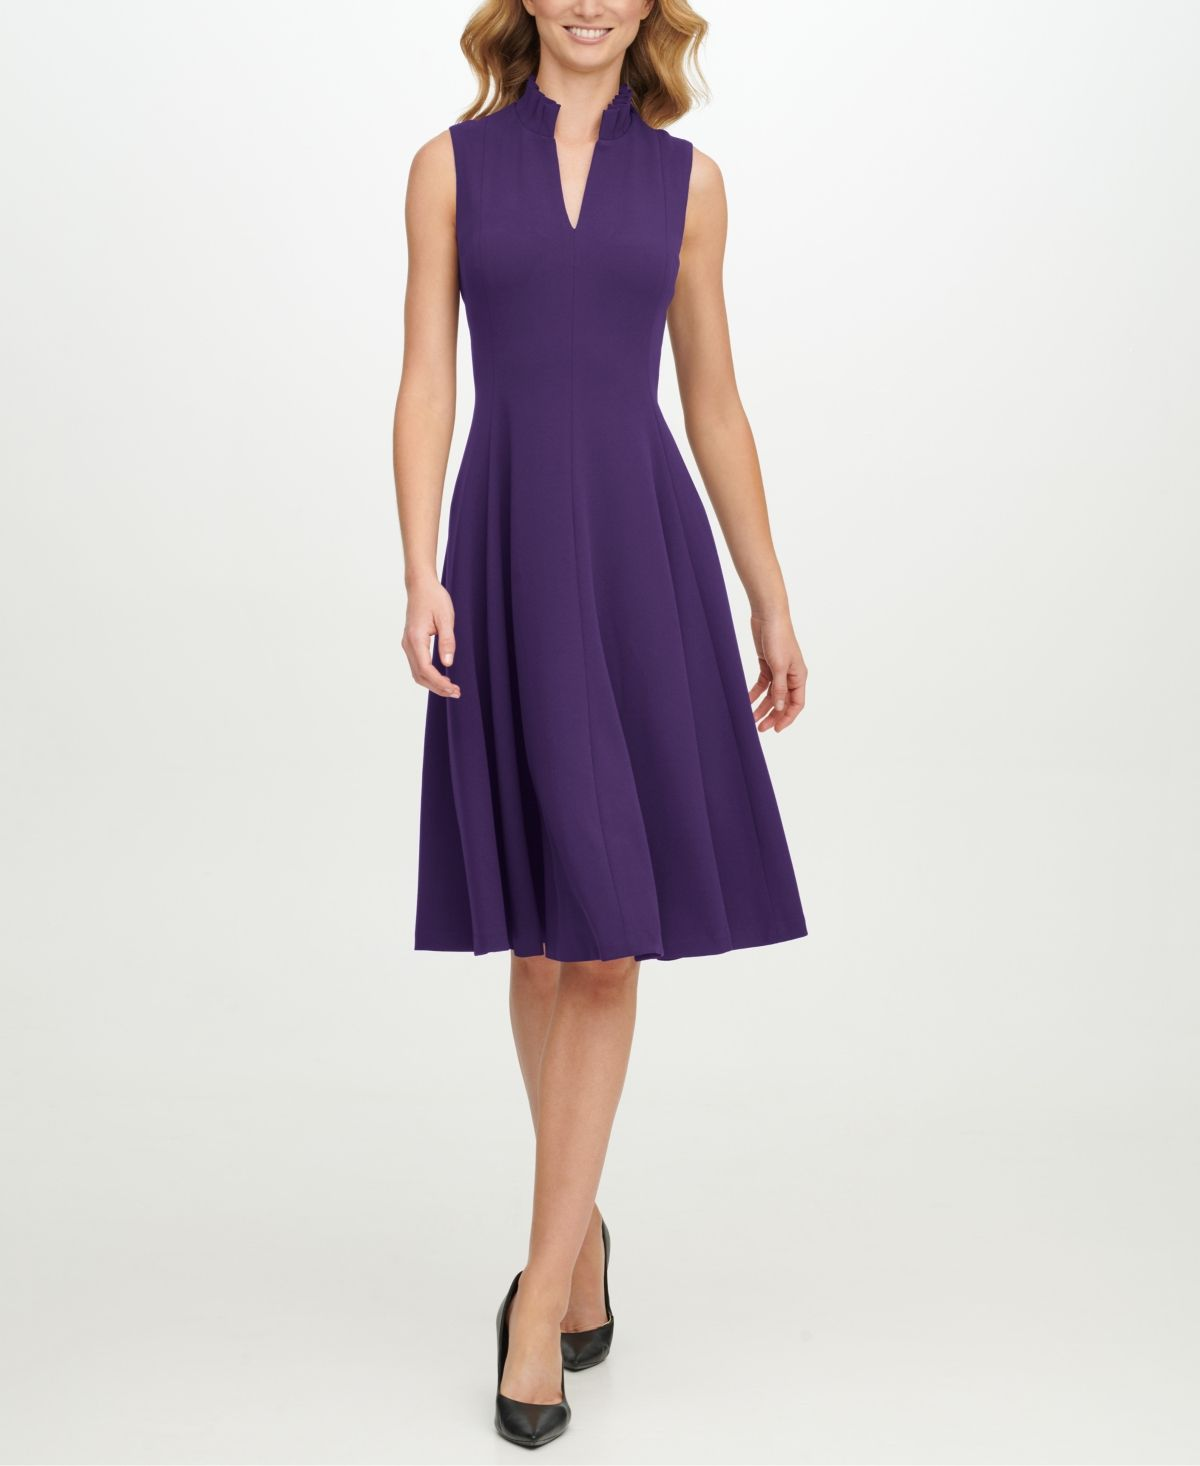 Calvin Klein Ruffled Neck Seamed Fit Flare Dress Night Flare Dress Fit Flare Dress Dresses [ 1466 x 1200 Pixel ]